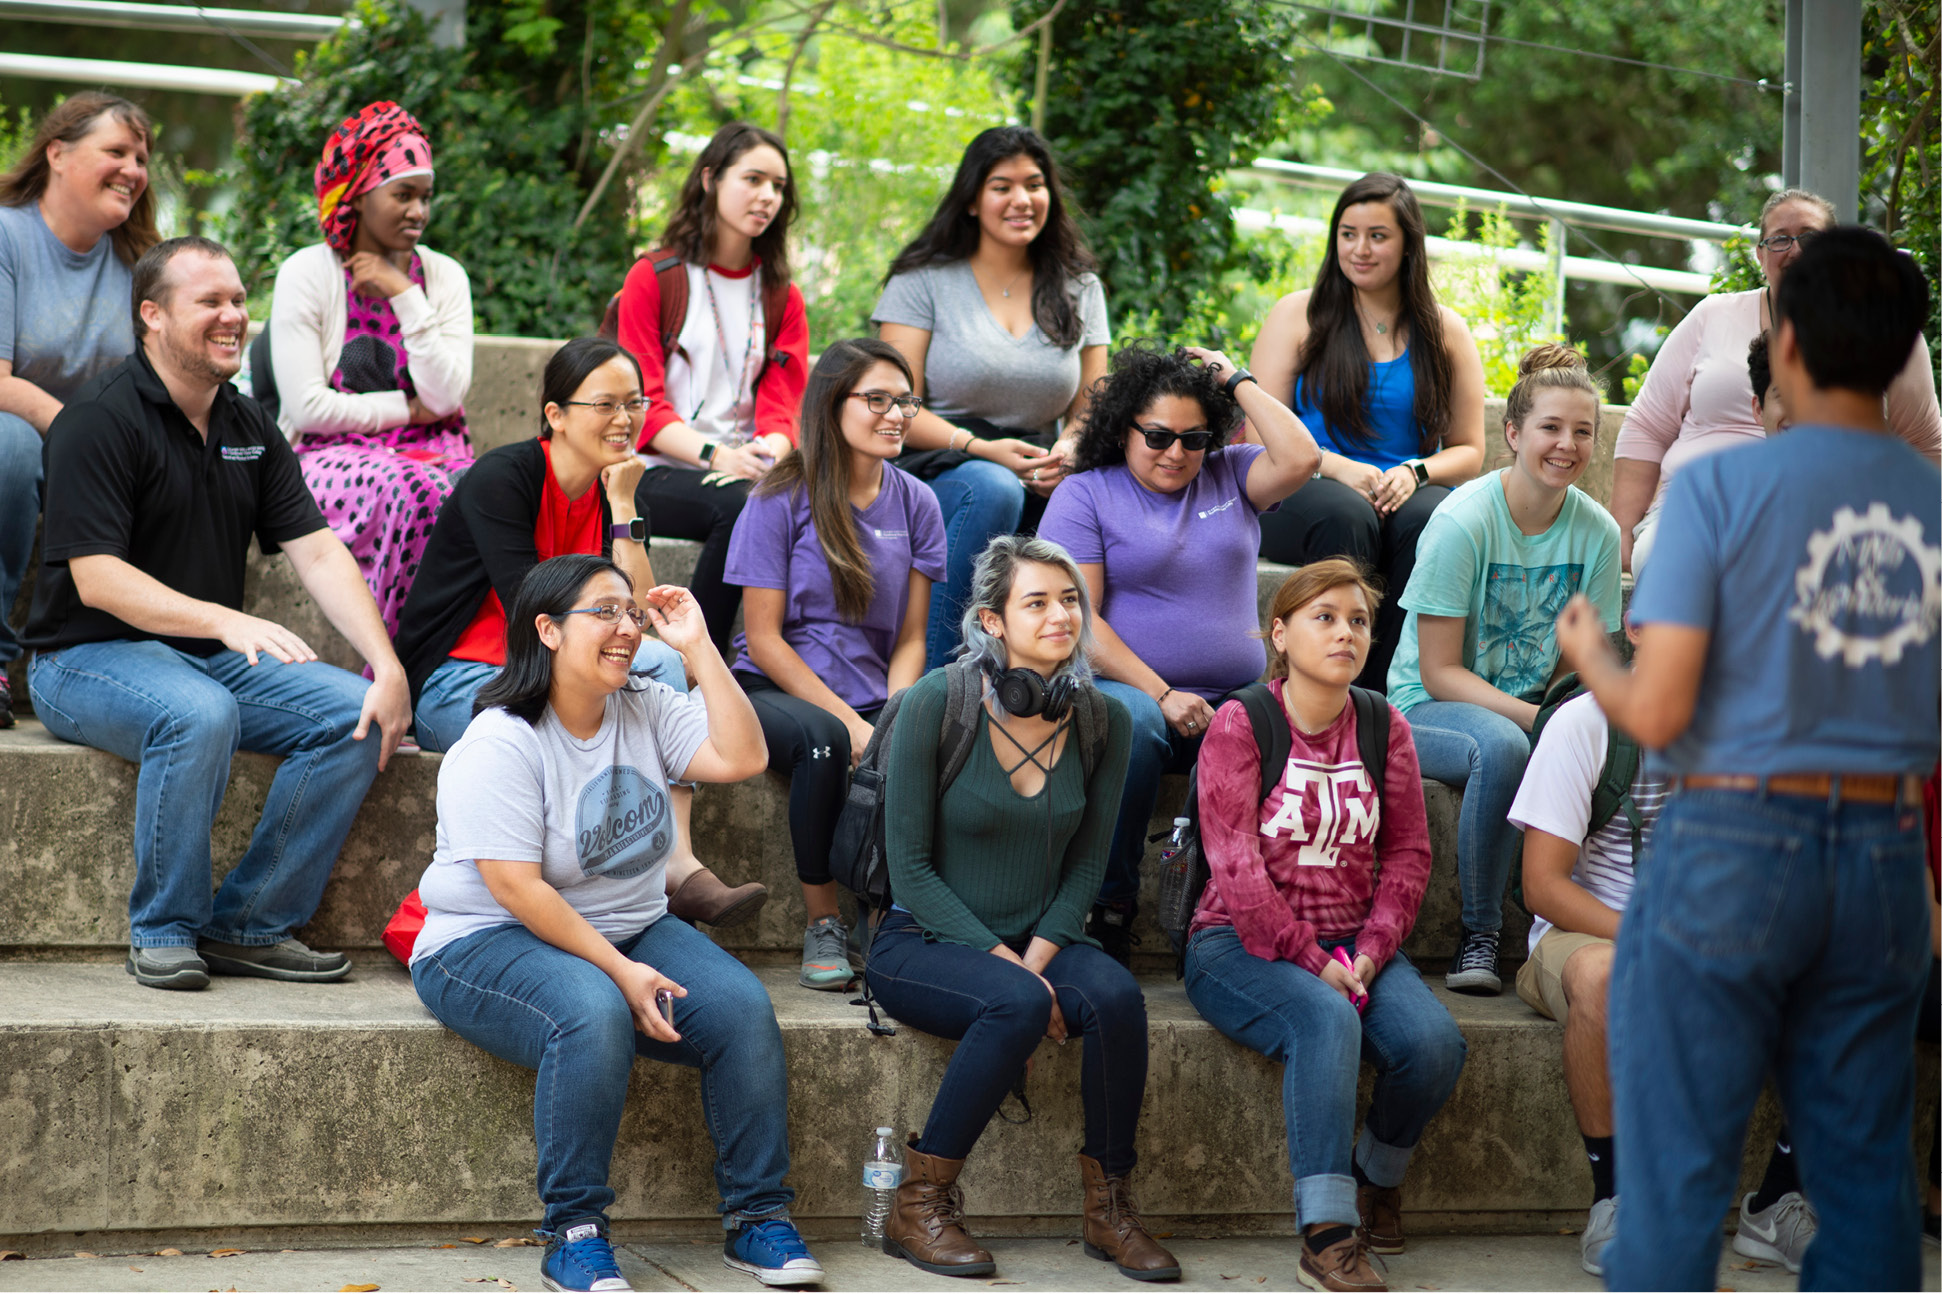 Students in an outdoor classroom at NVC